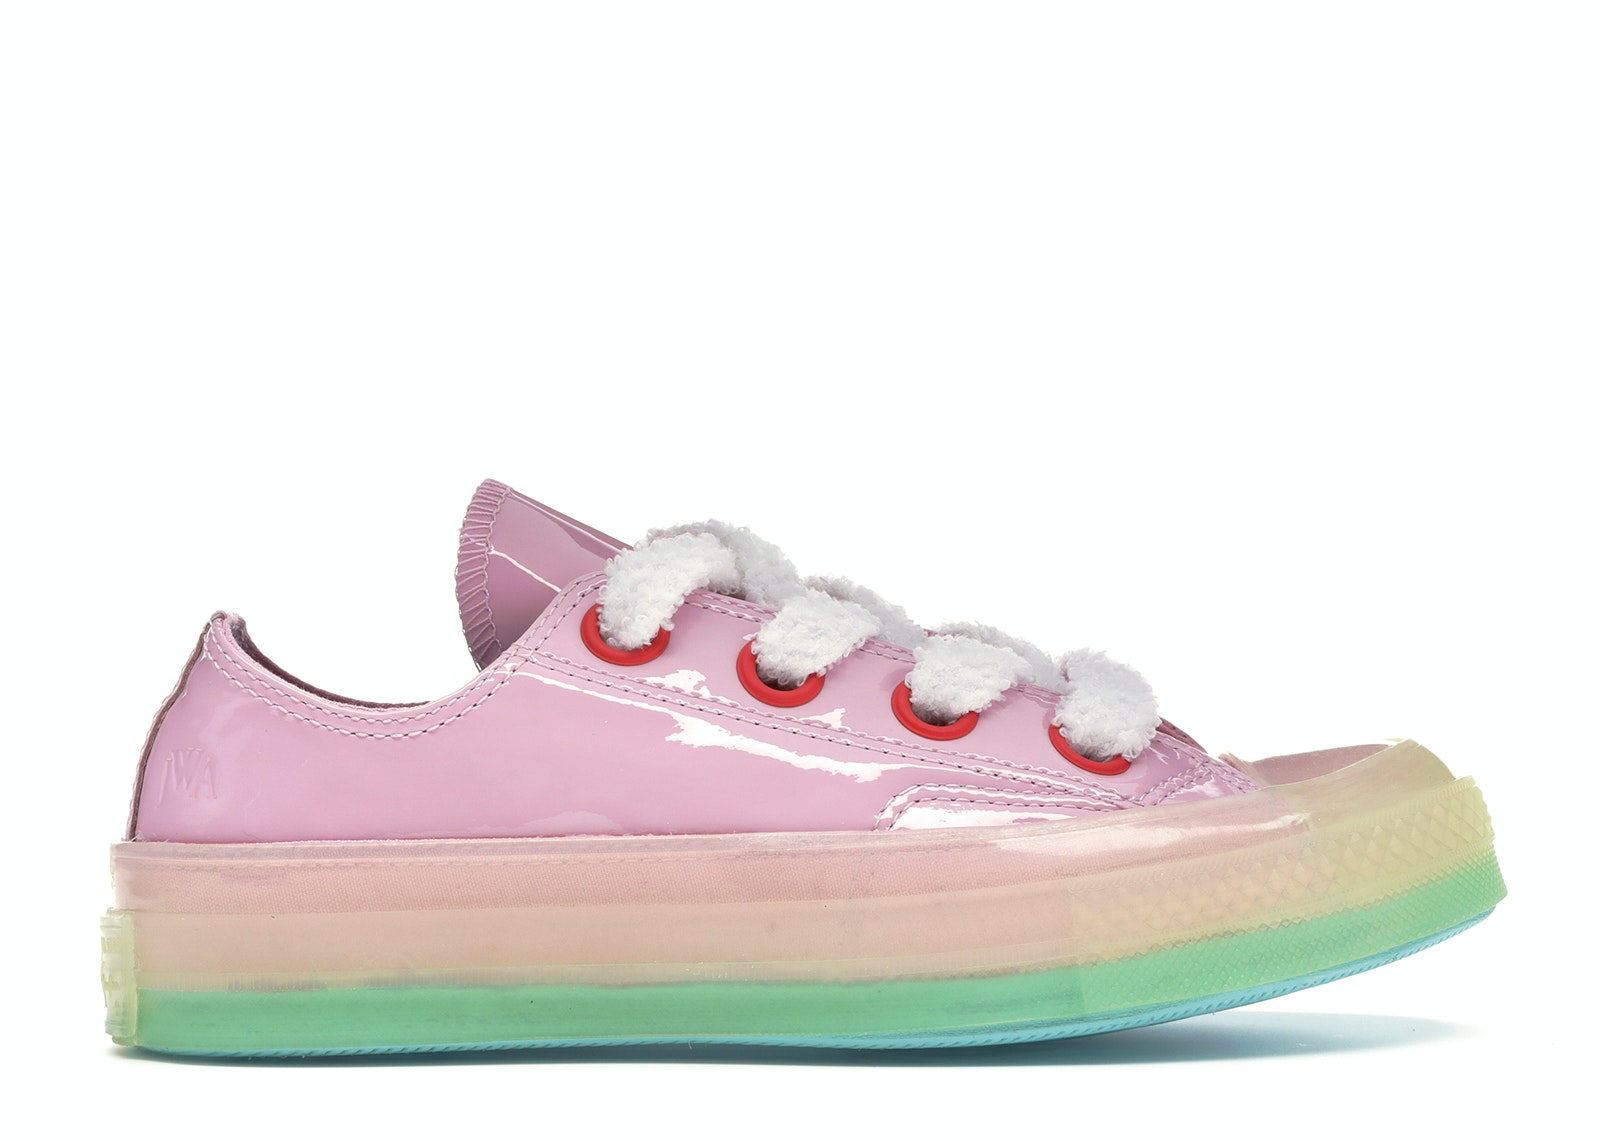 Converse Chuck Taylor All-Star 70s Ox Toy JW Anderson Pink